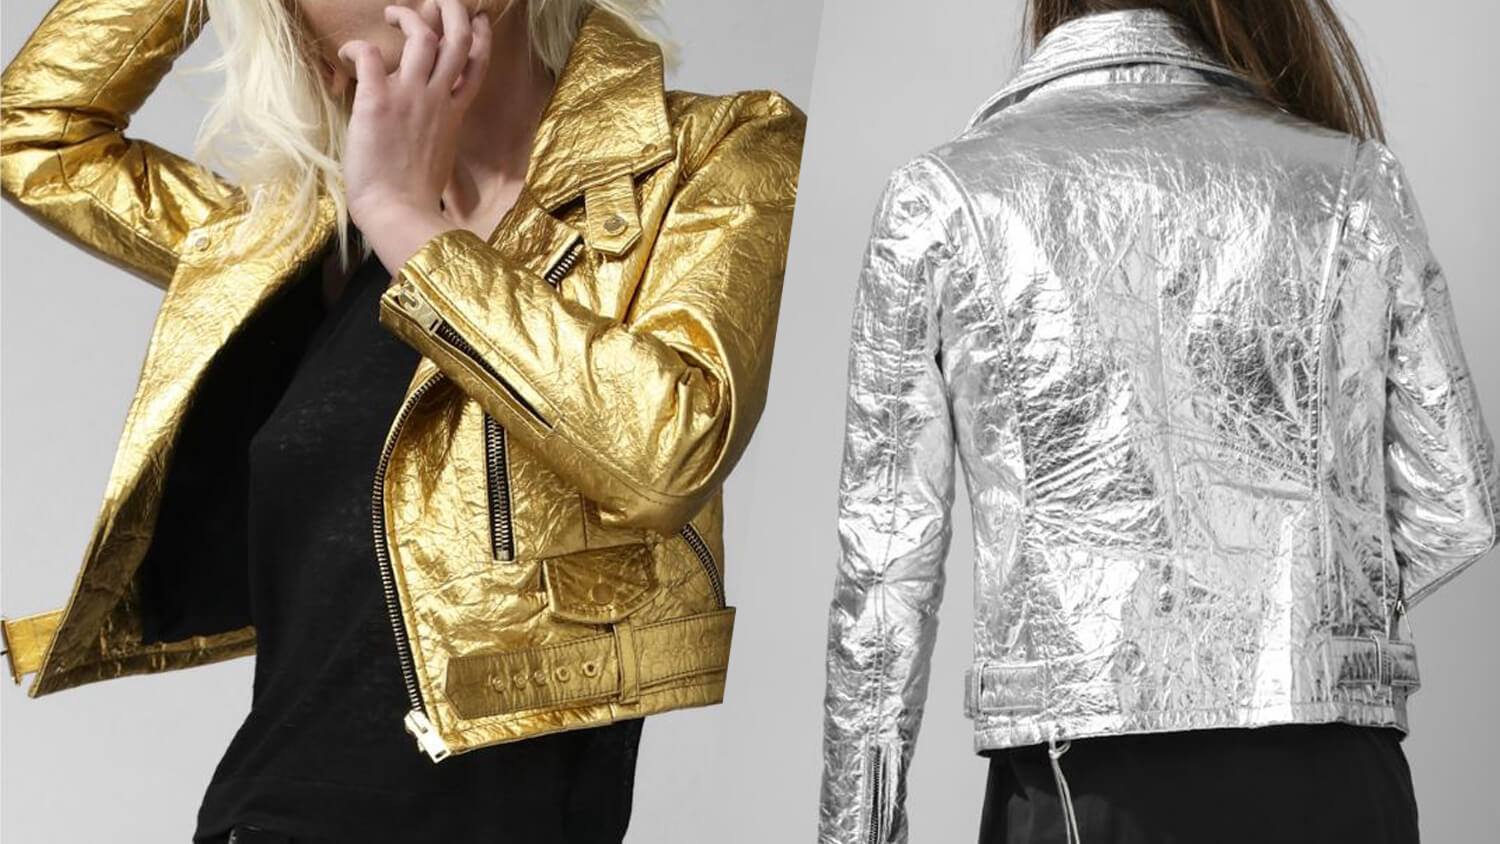 Italian Fashion Brand Altiir Launches Metallic Vegan Gold and Silver Biker Jackets Out of Pinatex Pineapple Leather